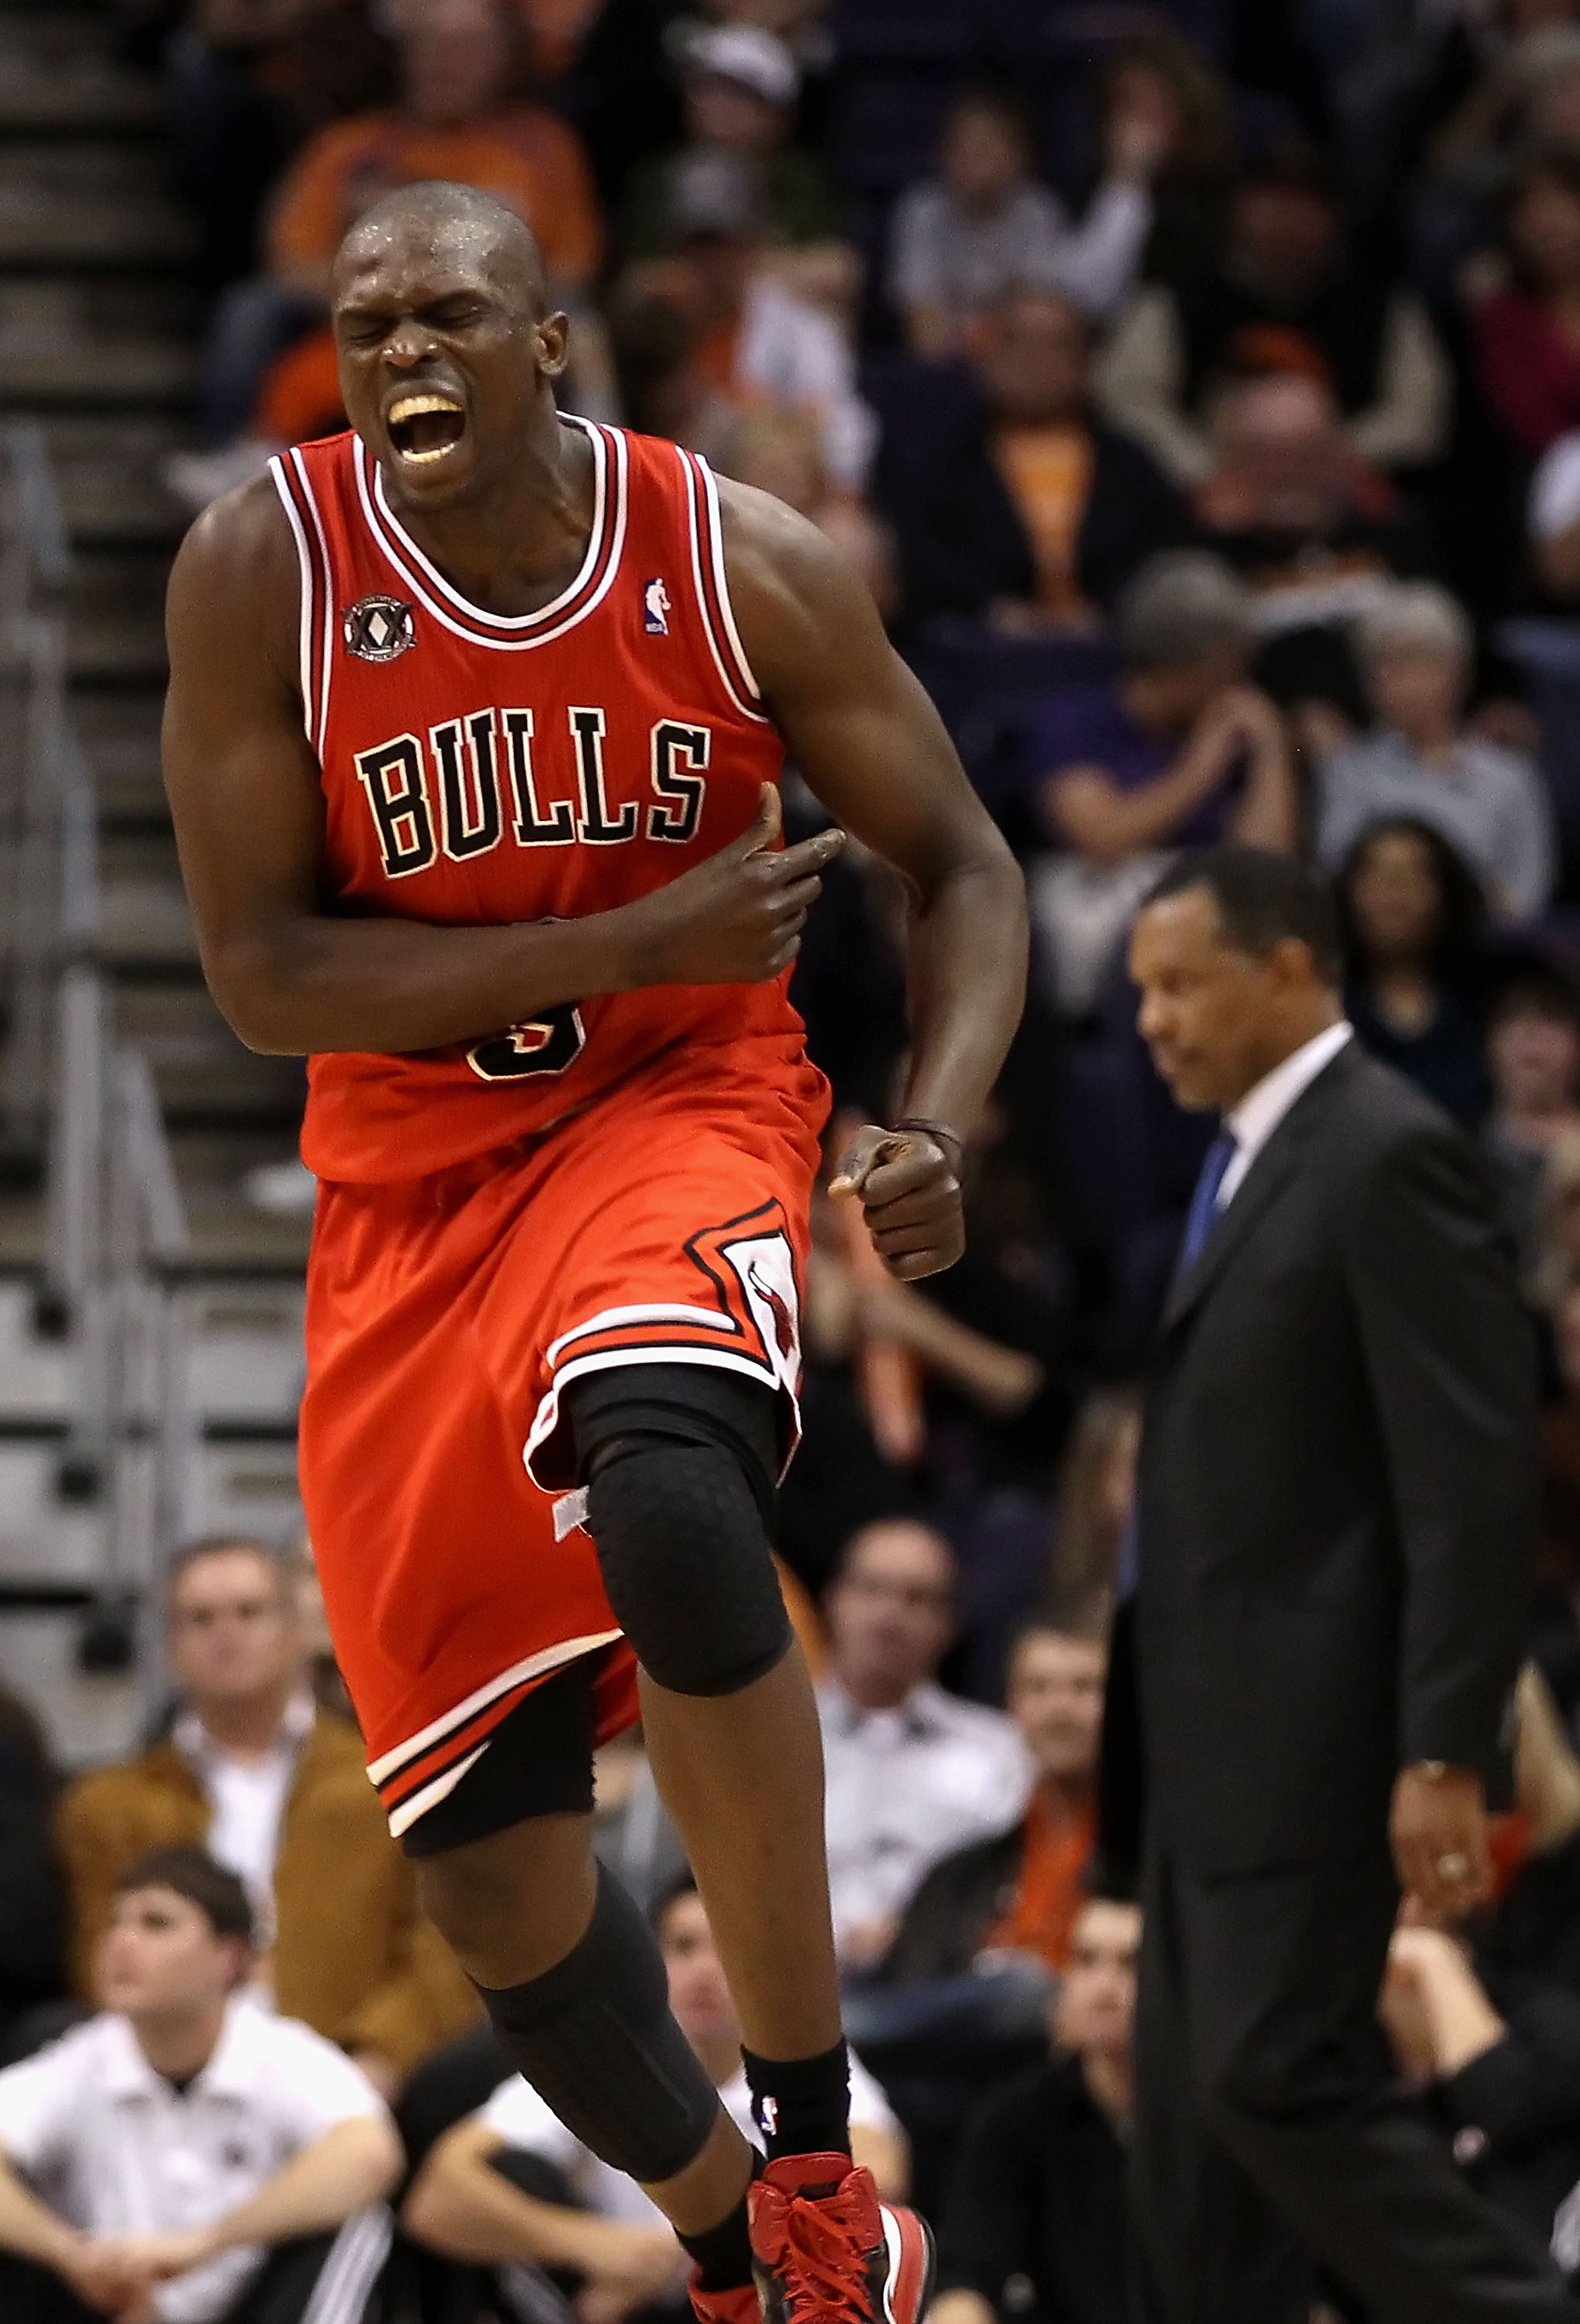 PHOENIX - NOVEMBER 24:  Luol Deng #9 of the Chicago Bulls celebrates after scoring against the Phoenix Suns late in overtime of the NBA game at US Airways Center on November 24, 2010 in Phoenix, Arizona. NOTE TO USER: User expressly acknowledges and agree